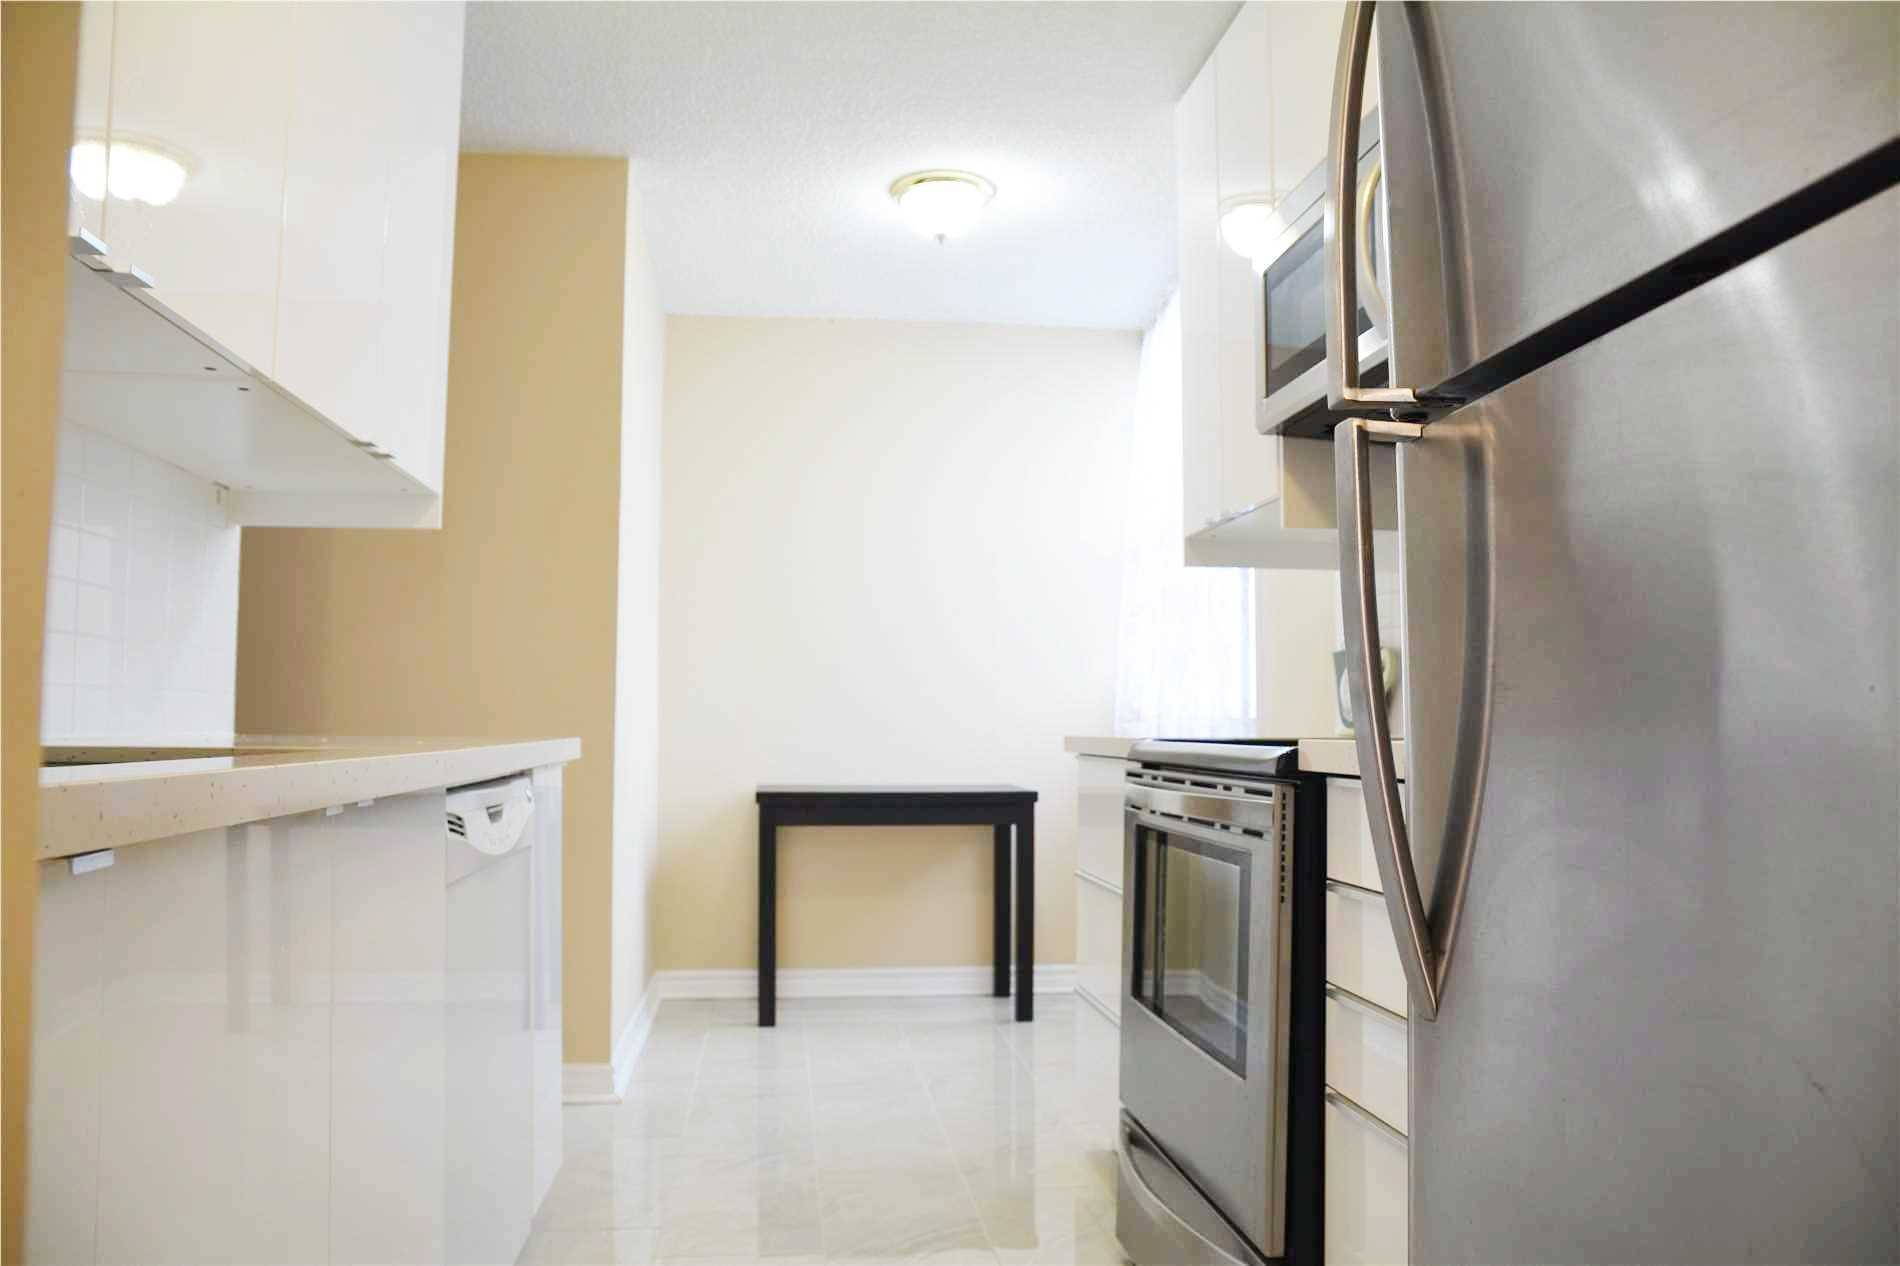 Image 13 of 14 showing inside of 3 Bedroom Condo Apt Apartment for Lease at 205 Hilda Ave Unit# 2104, Toronto M2M4B1